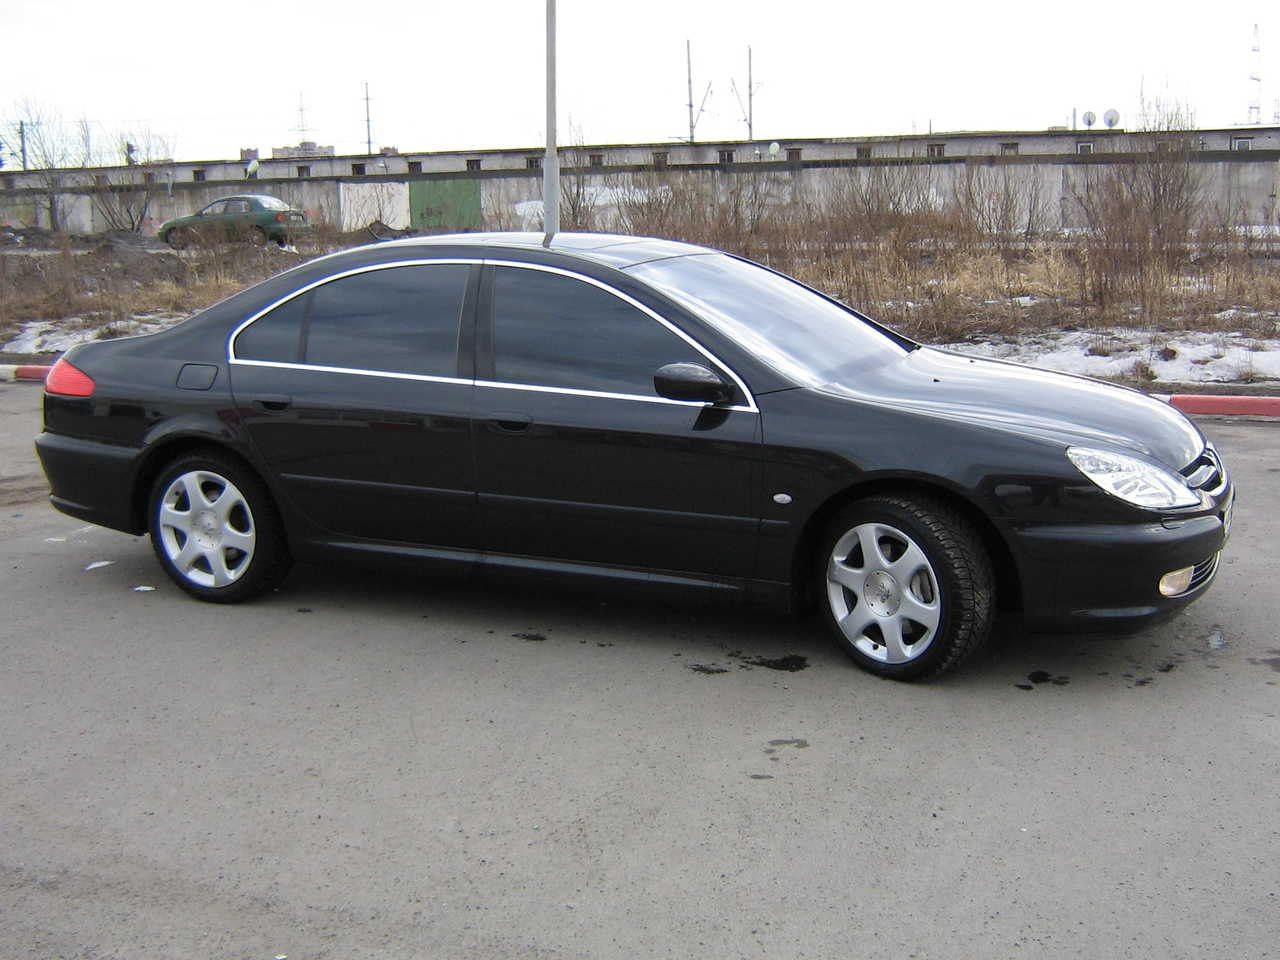 Used Cars For Sale In Ma >> 2004 Peugeot 607 Pictures, 3.0l., Gasoline, FF, Automatic ...